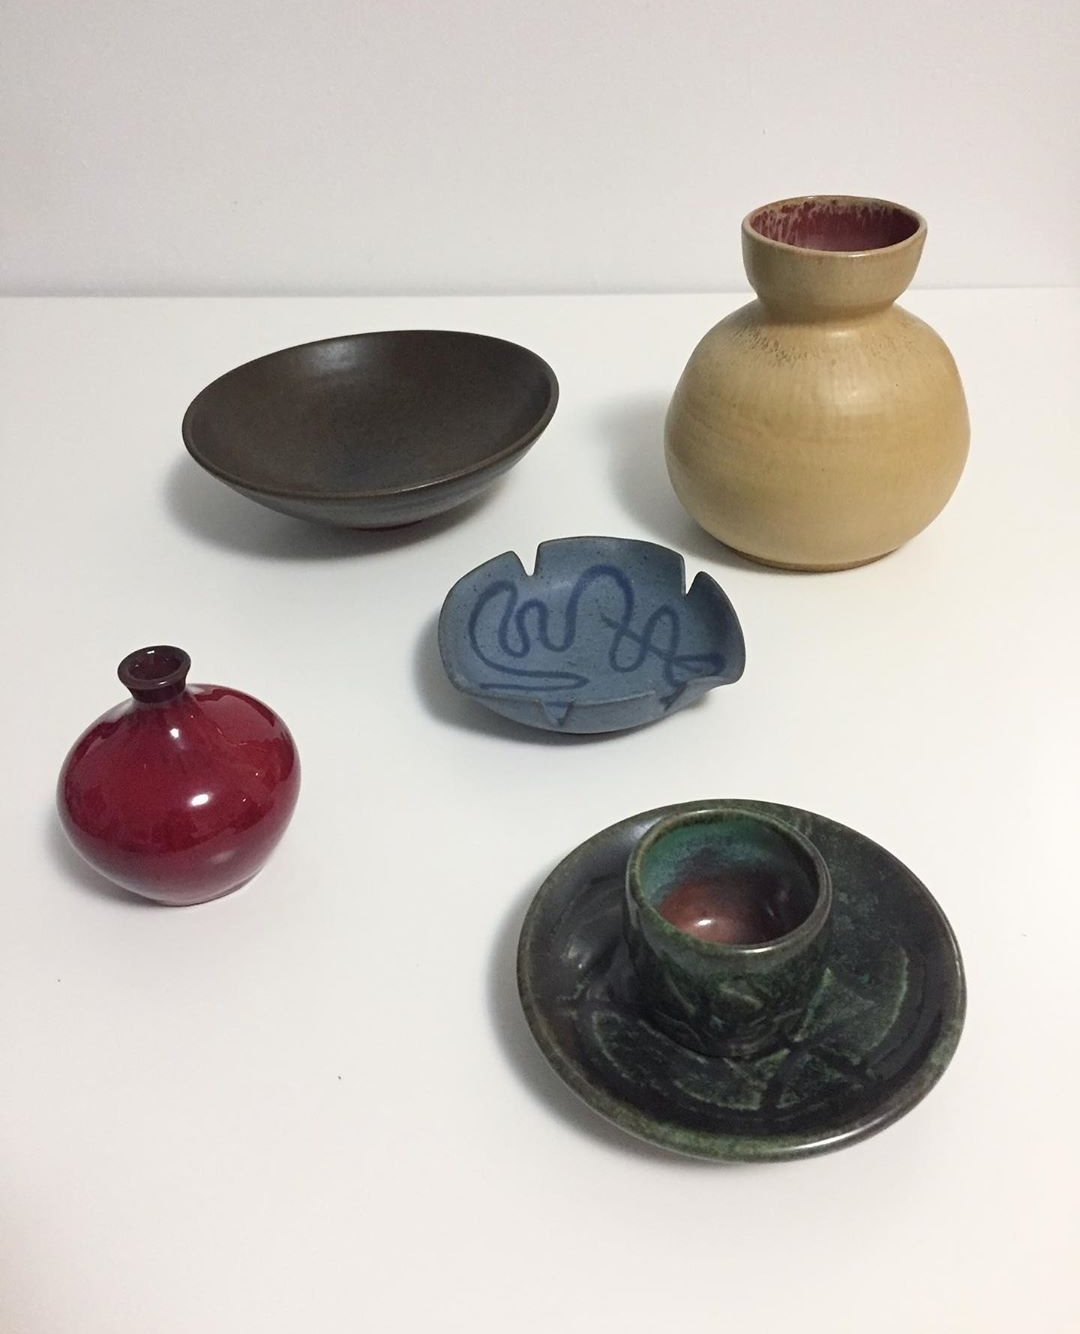 """5 pieces of lorenzen pottery - each piece sold separatelyDemi tasse - plate 5"""" diameter, entire height 2""""Shallow brown bowl - 7"""" diameter, 2"""" heightBlue dish - 4.75"""" length, 4.5"""" width, 1"""" heightRed vase - 3.25"""" height, 3"""" diameter, comes in original Lorenzen boxYellow vase - 5.5"""" height x 5"""" width"""